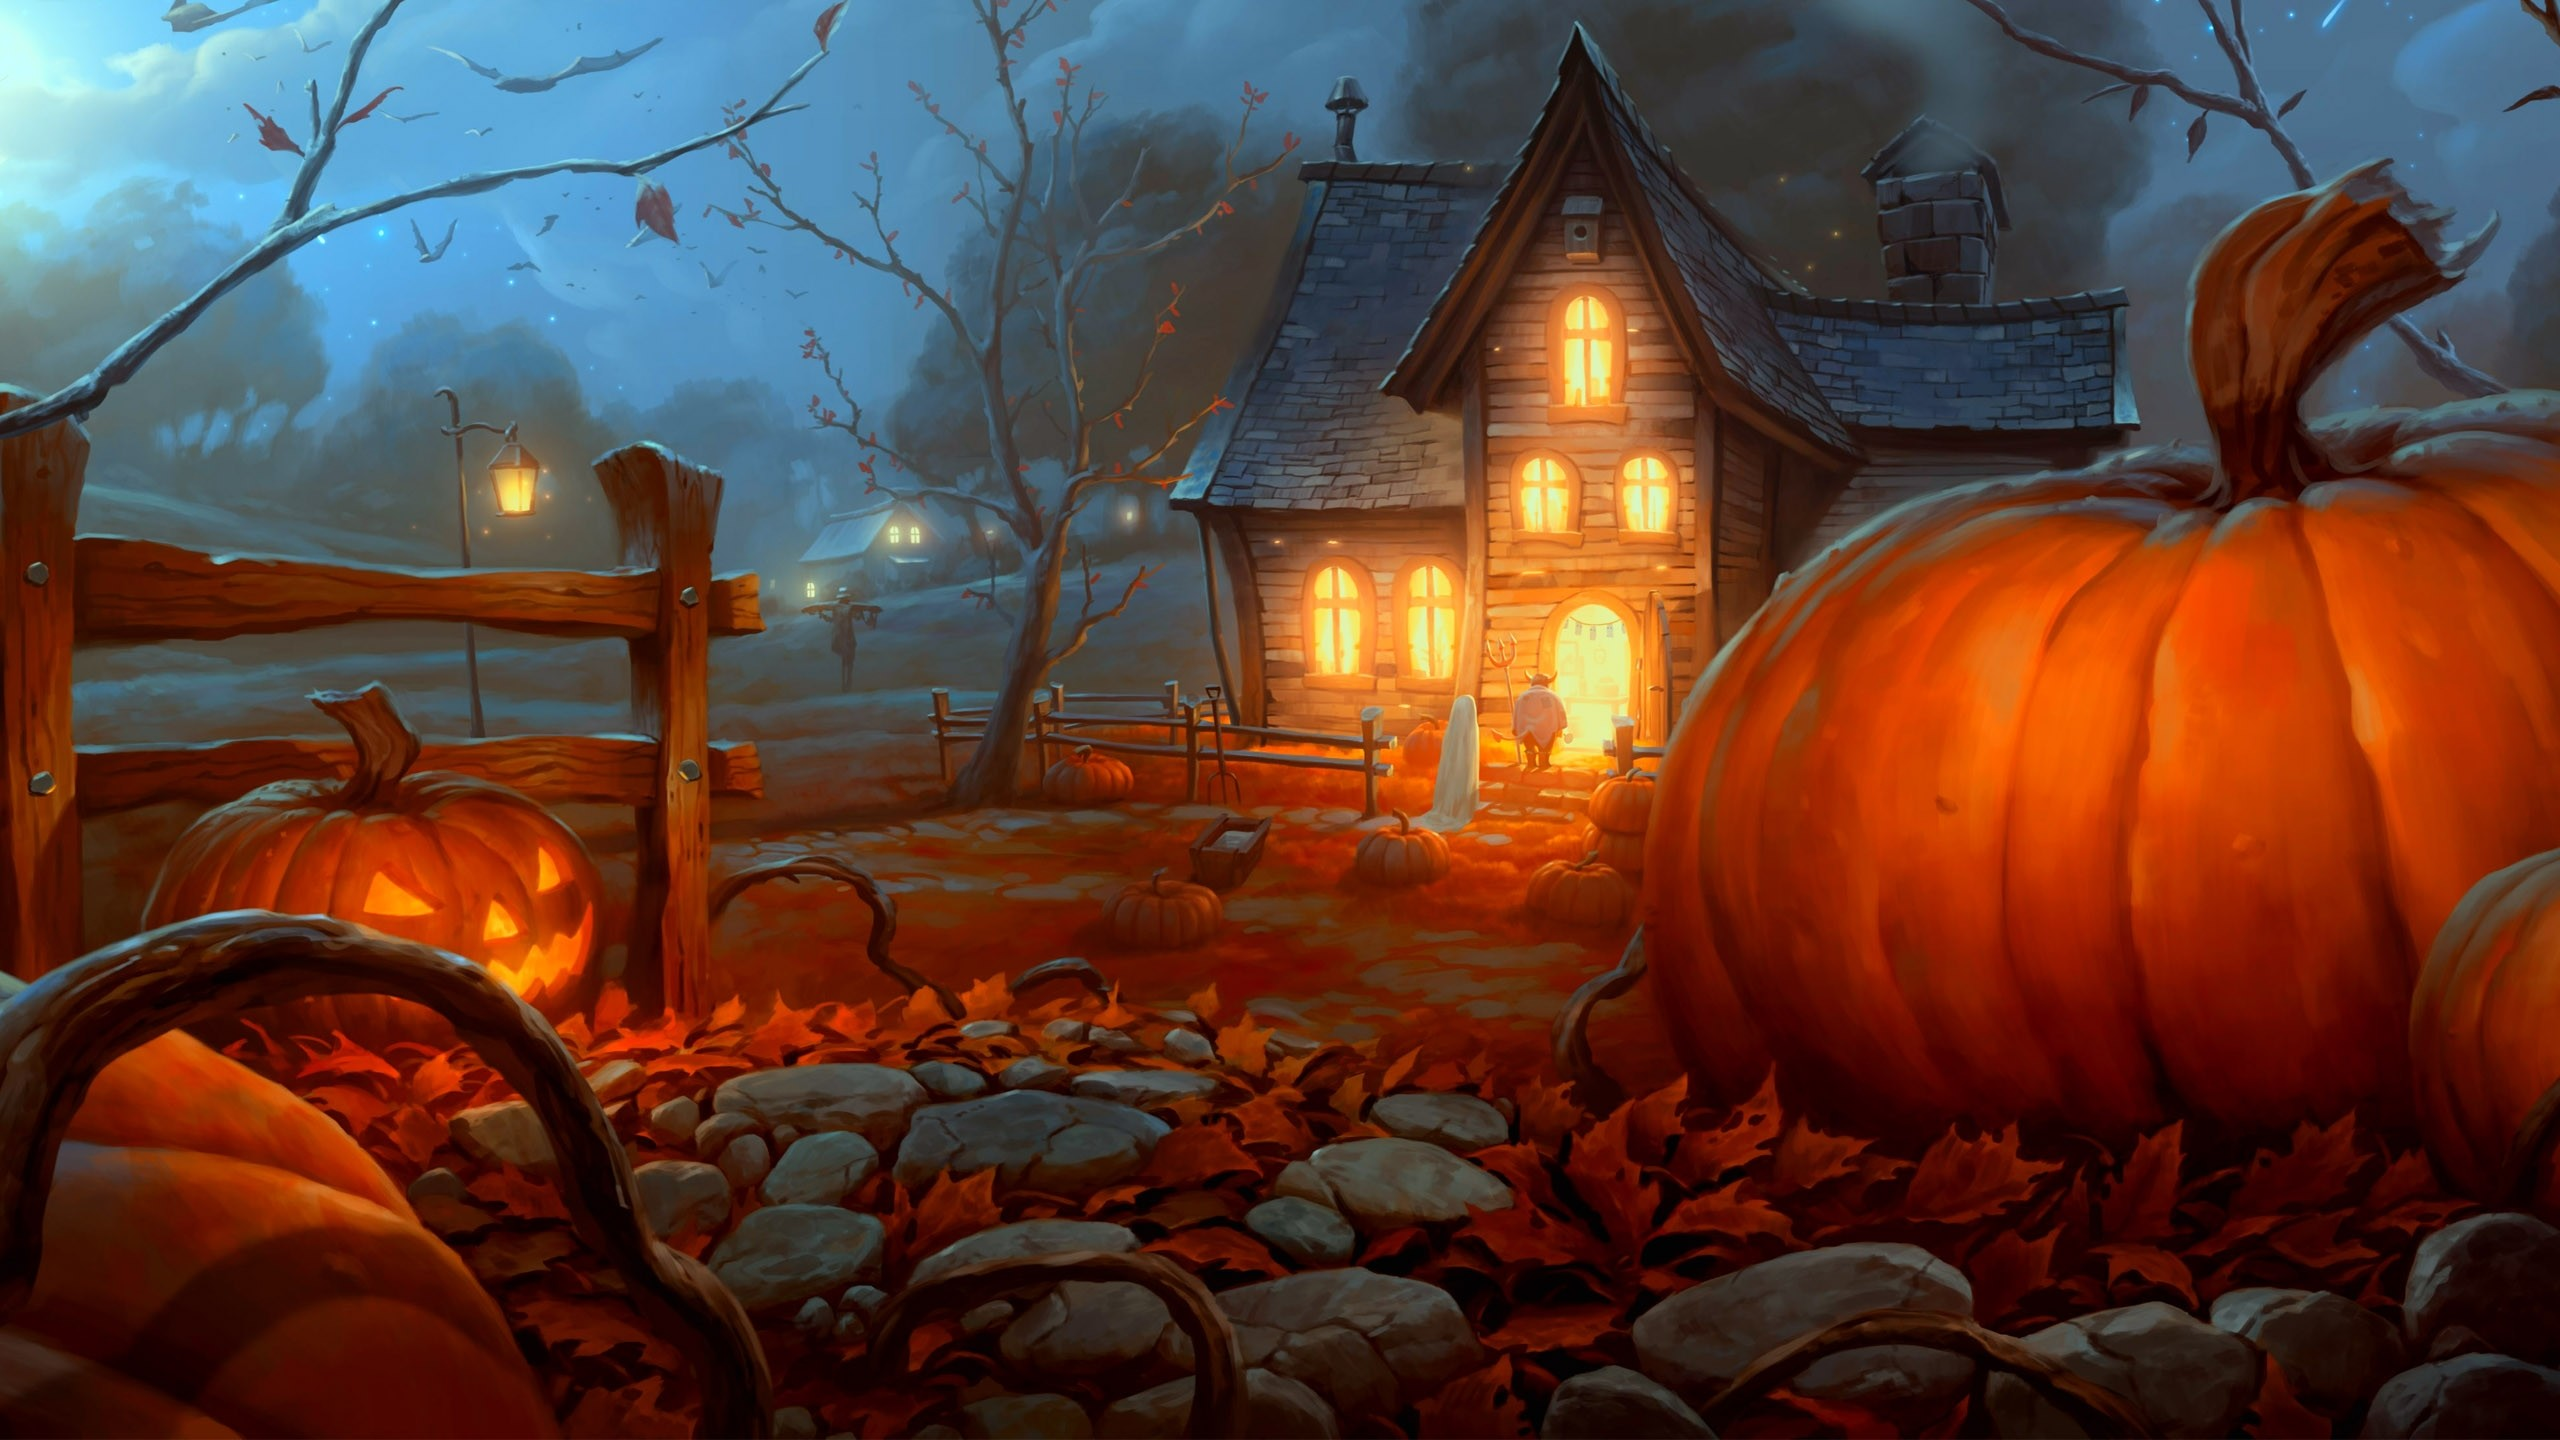 is under the 3d wallpapers category of free hd wallpapers 3d halloween .